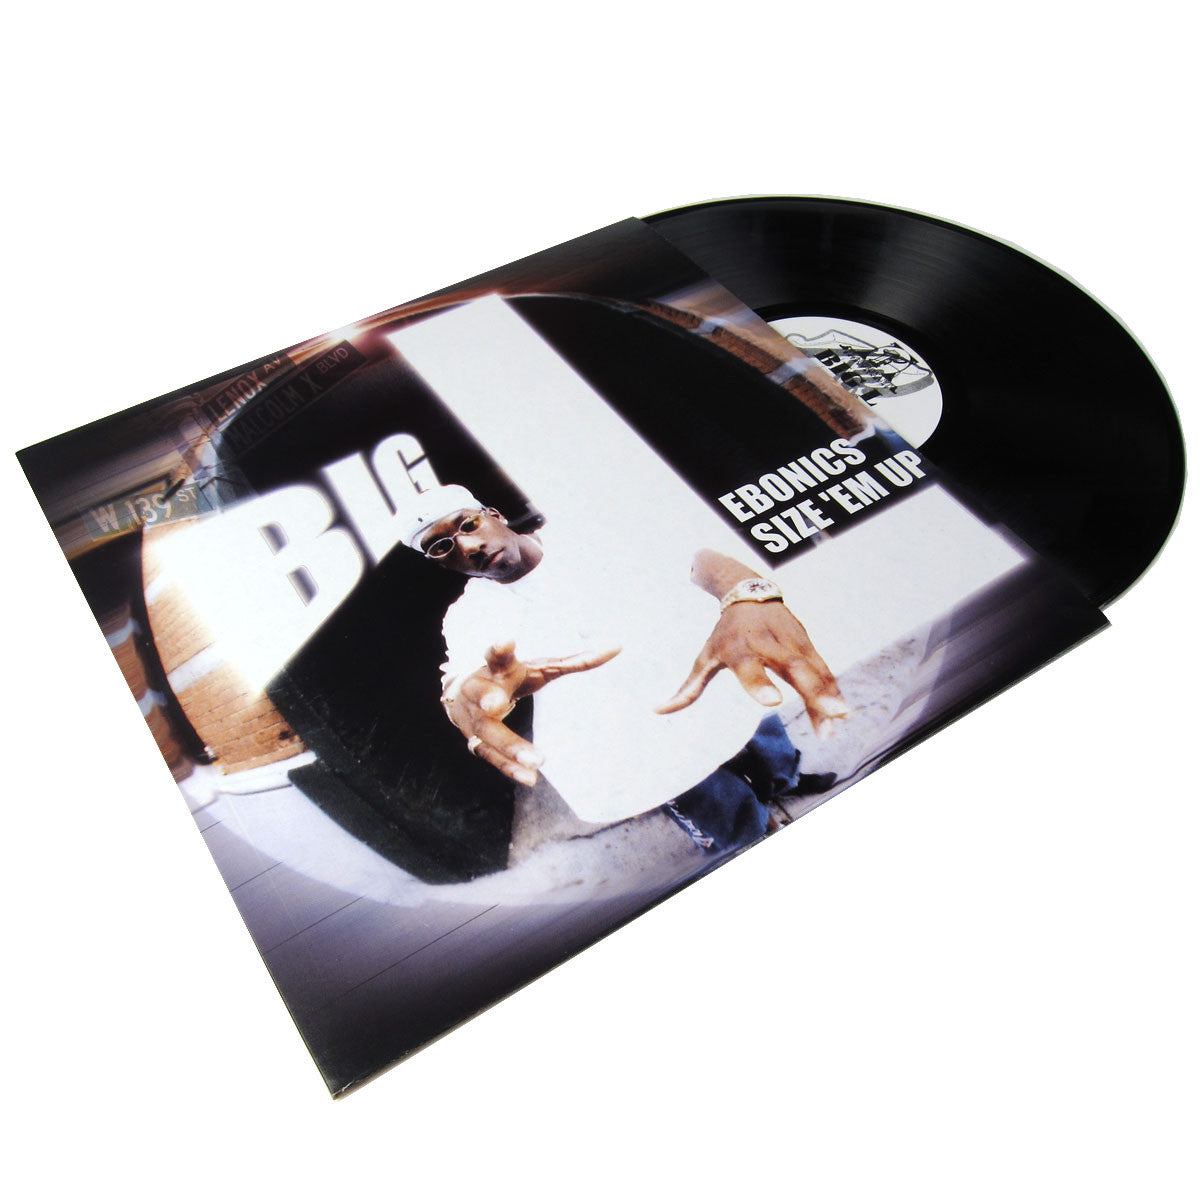 Big L: Ebonics / Size Em Up Vinyl 12""